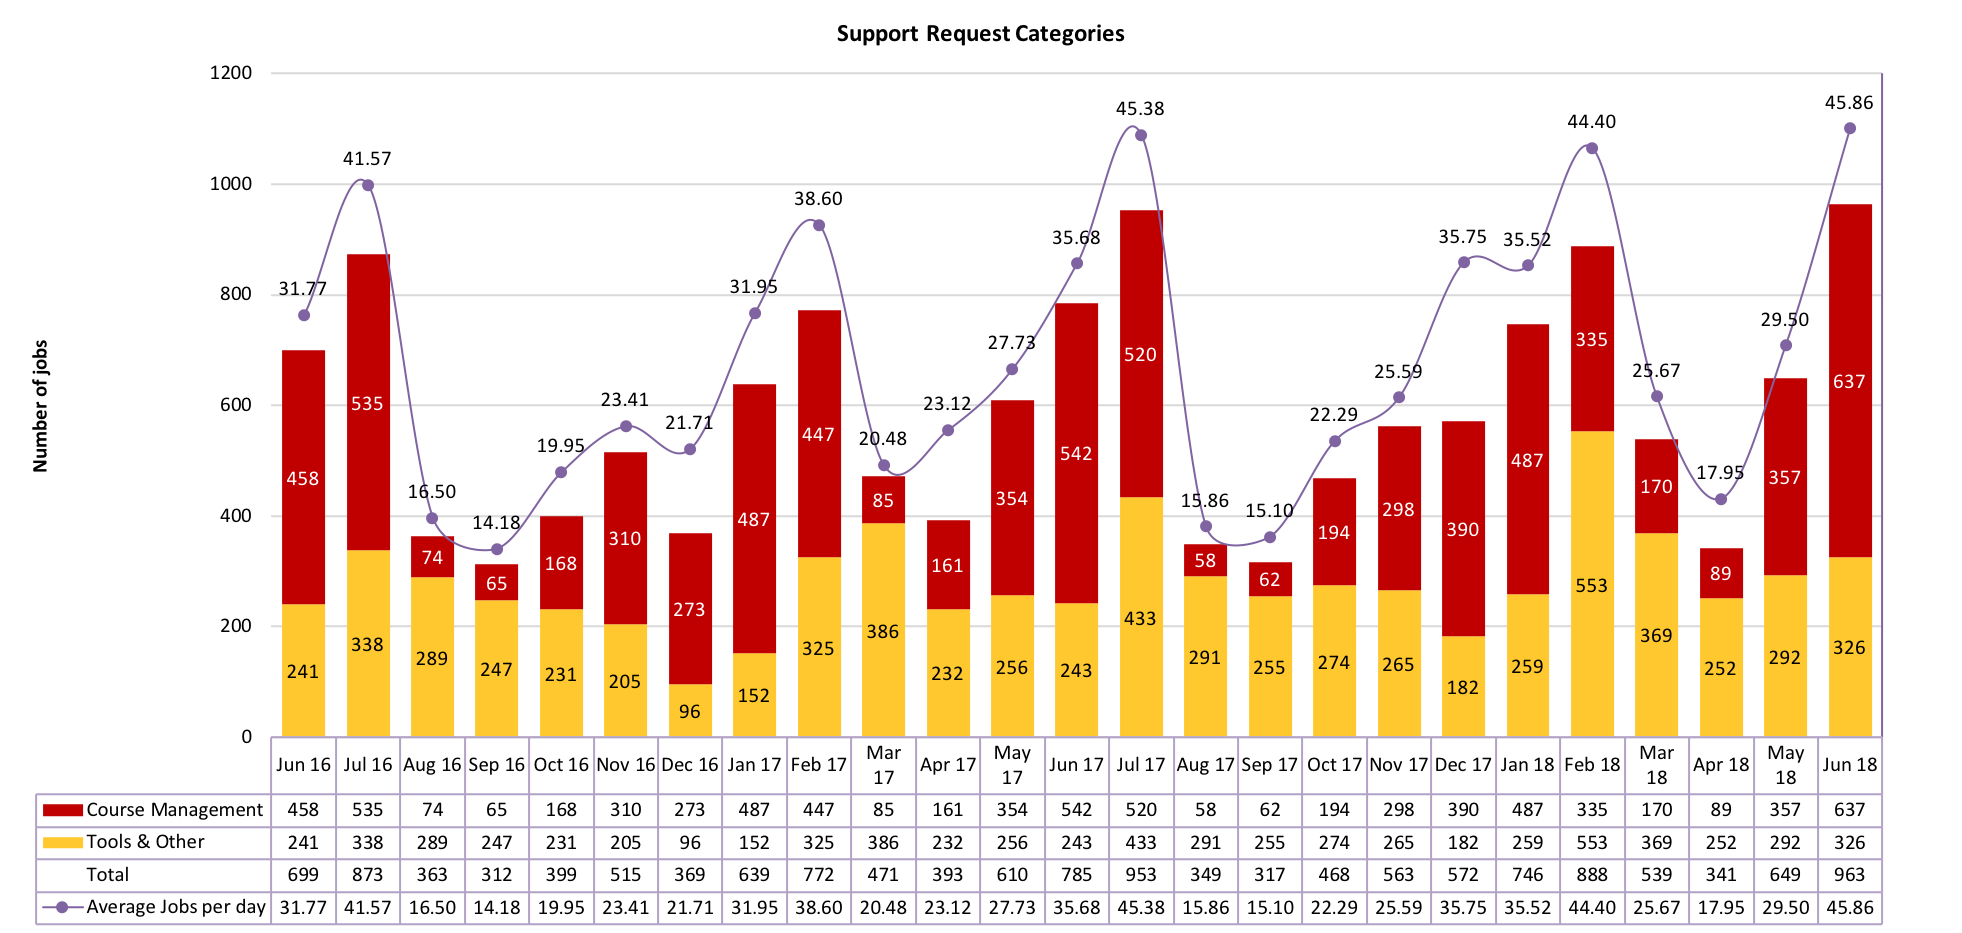 Chart of Support Request Categories from June 2016 to June 2018